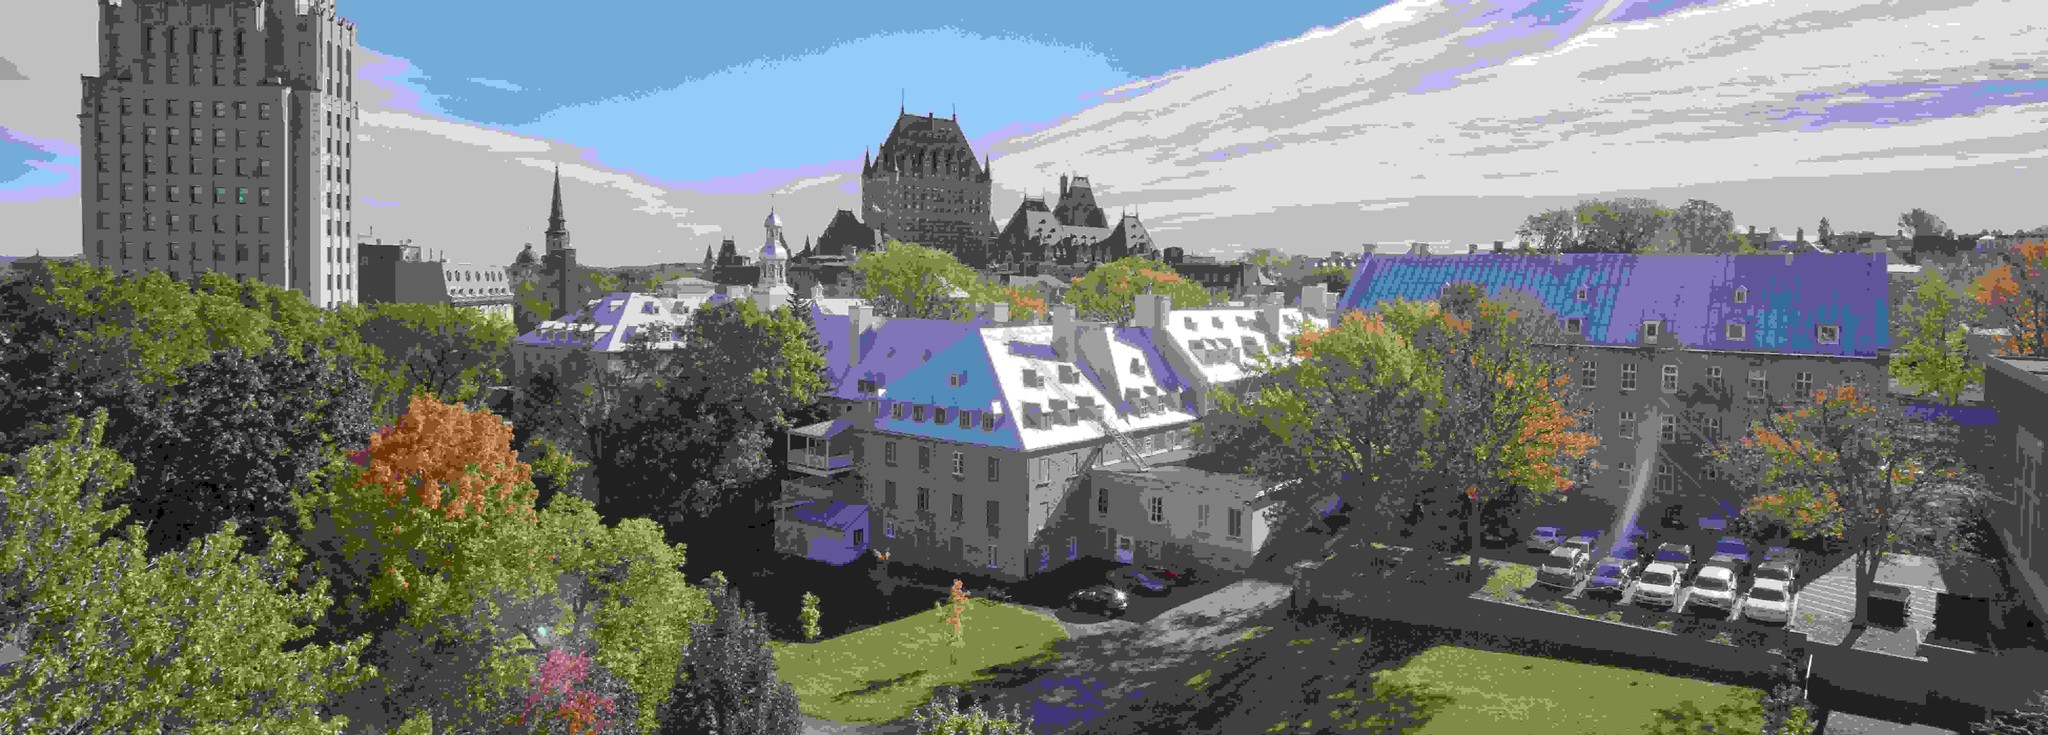 Champlain Hotel in Quebec city view from above